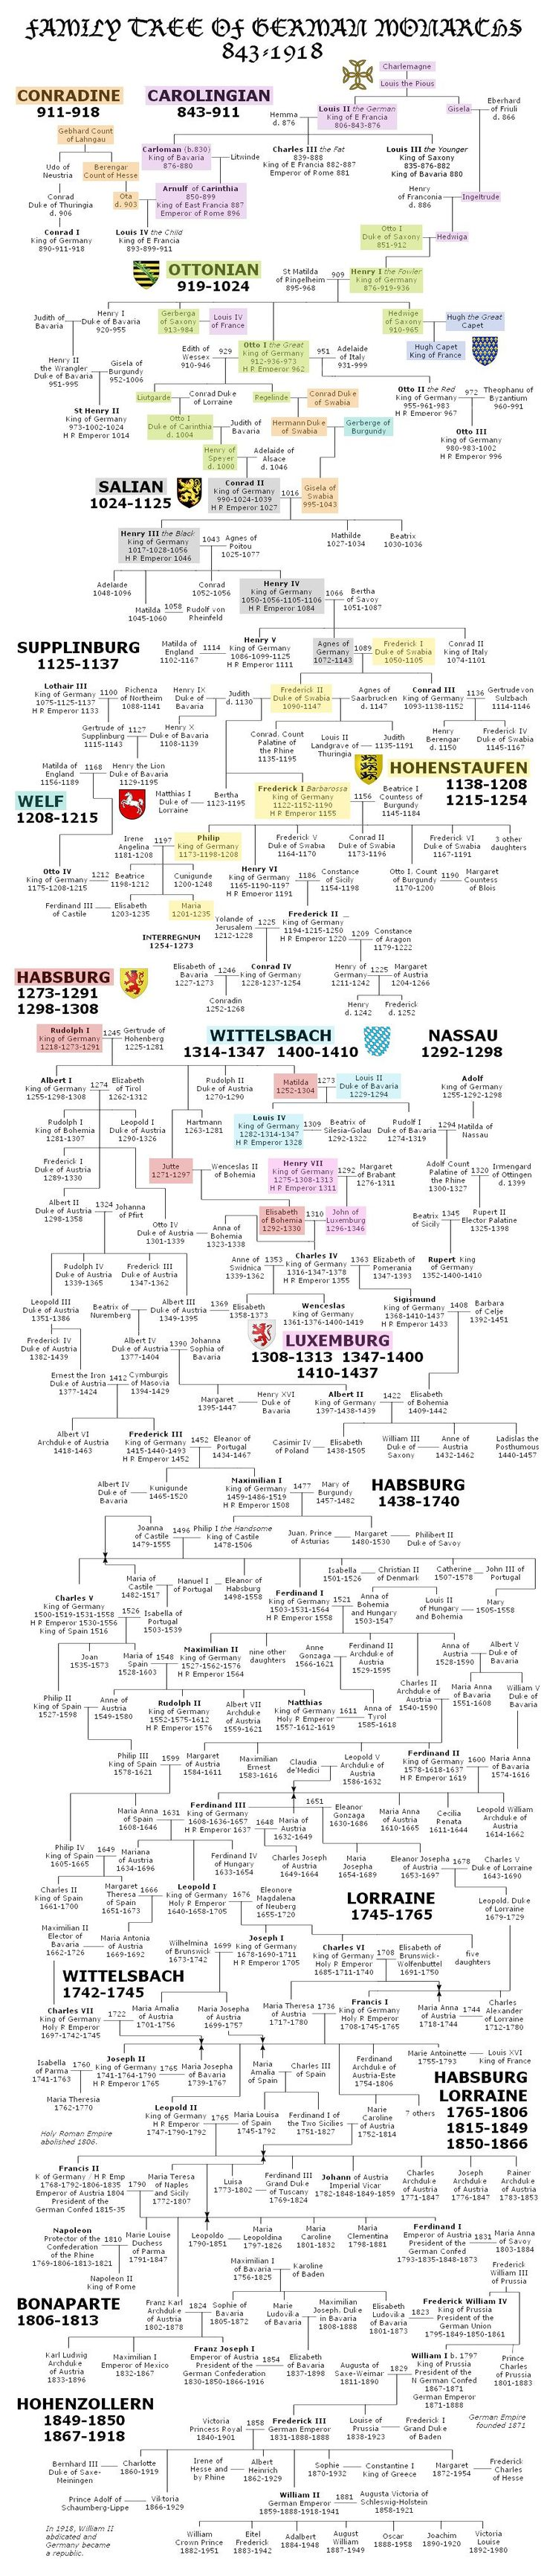 best images about history family tree of german monarchs 843 the current queen is also of german descent but her family changed their last to the very english sounding